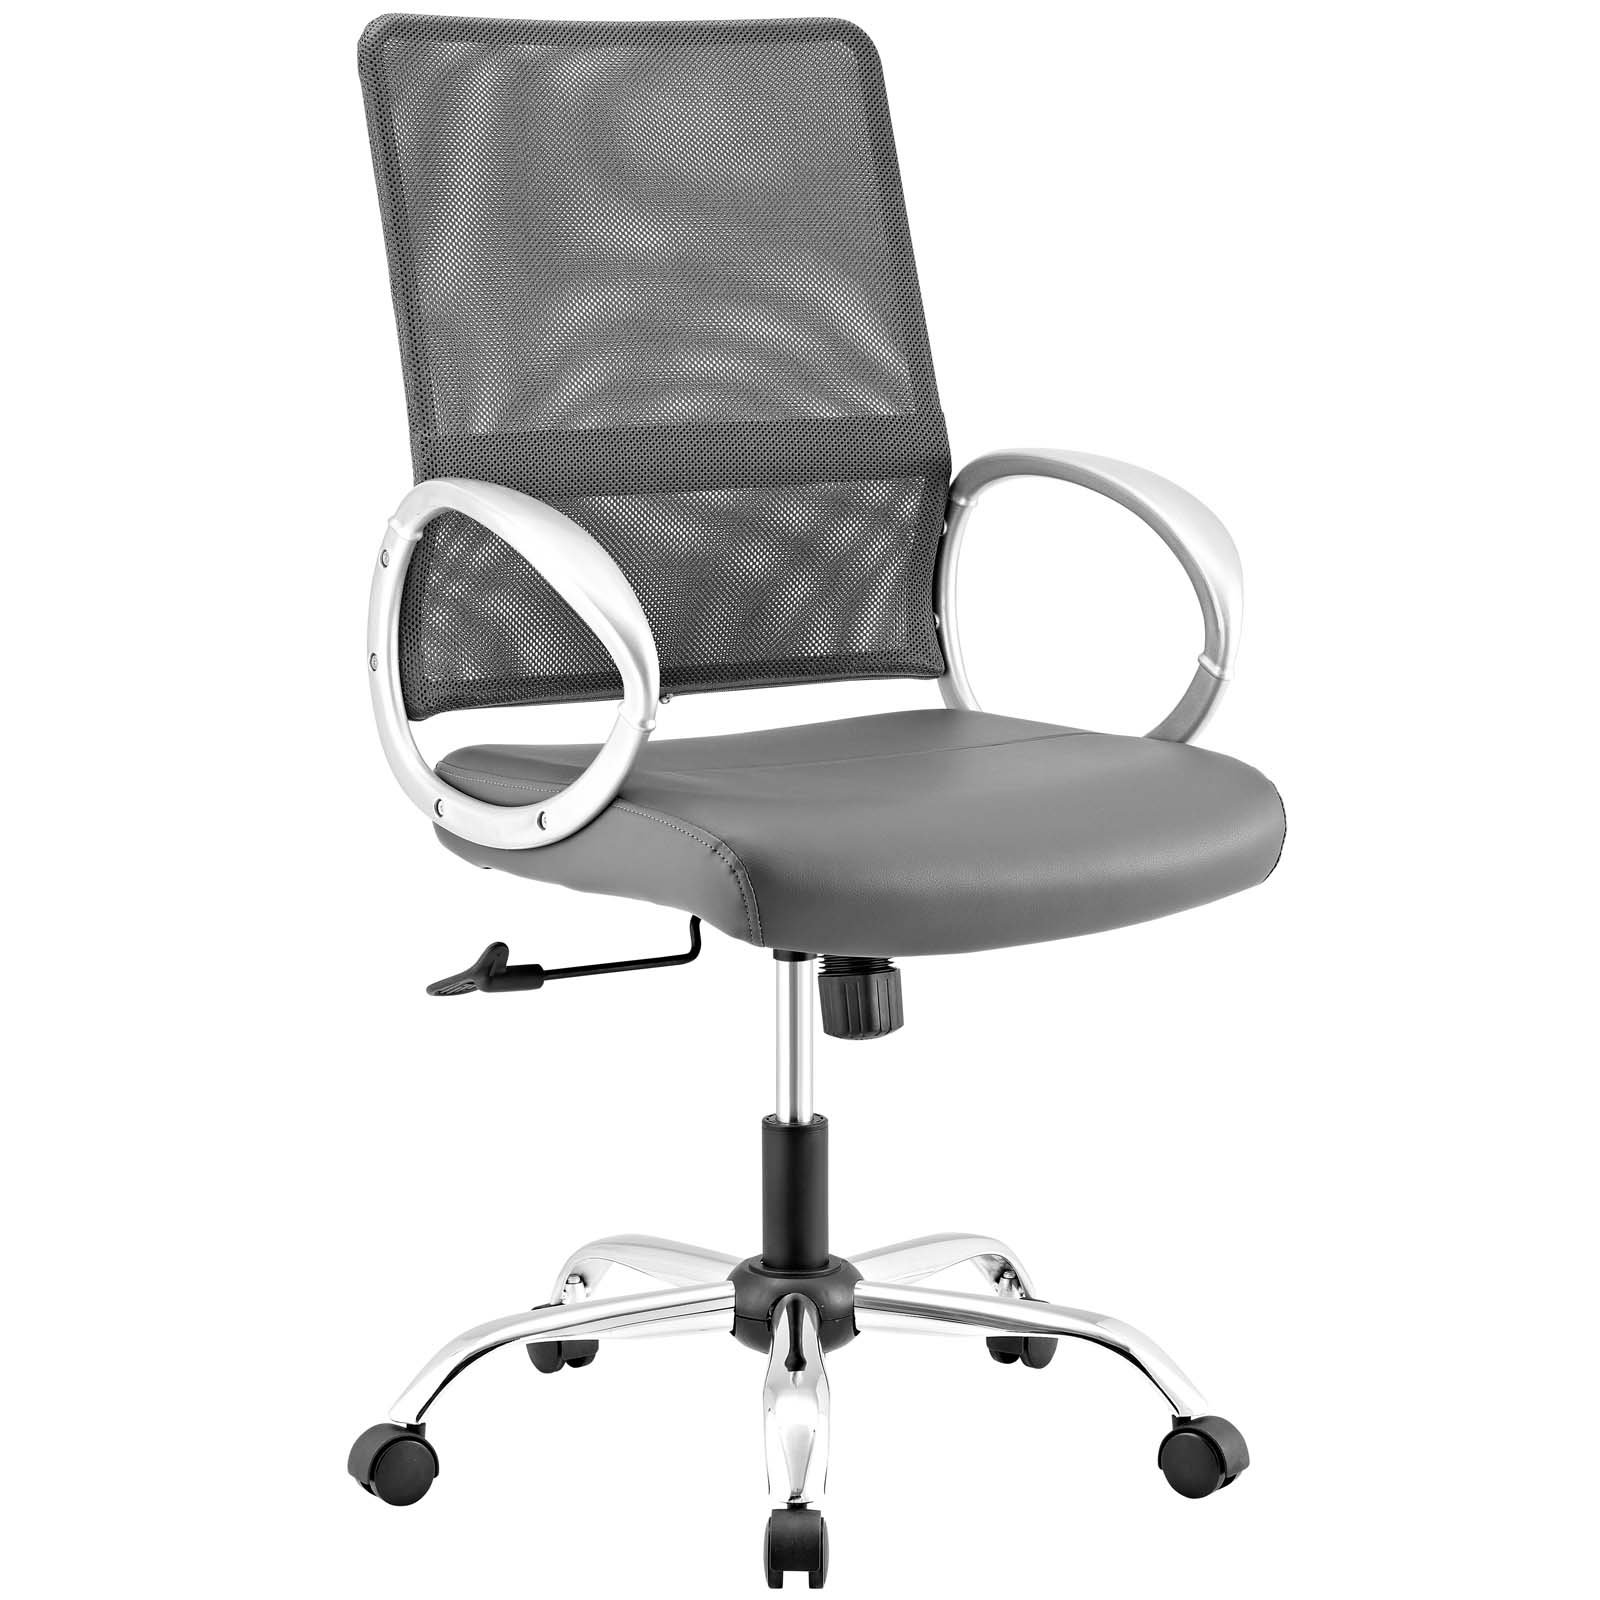 Modway EEI-2861-GRY Command Mesh and Vinyl, Office Chair, Gray